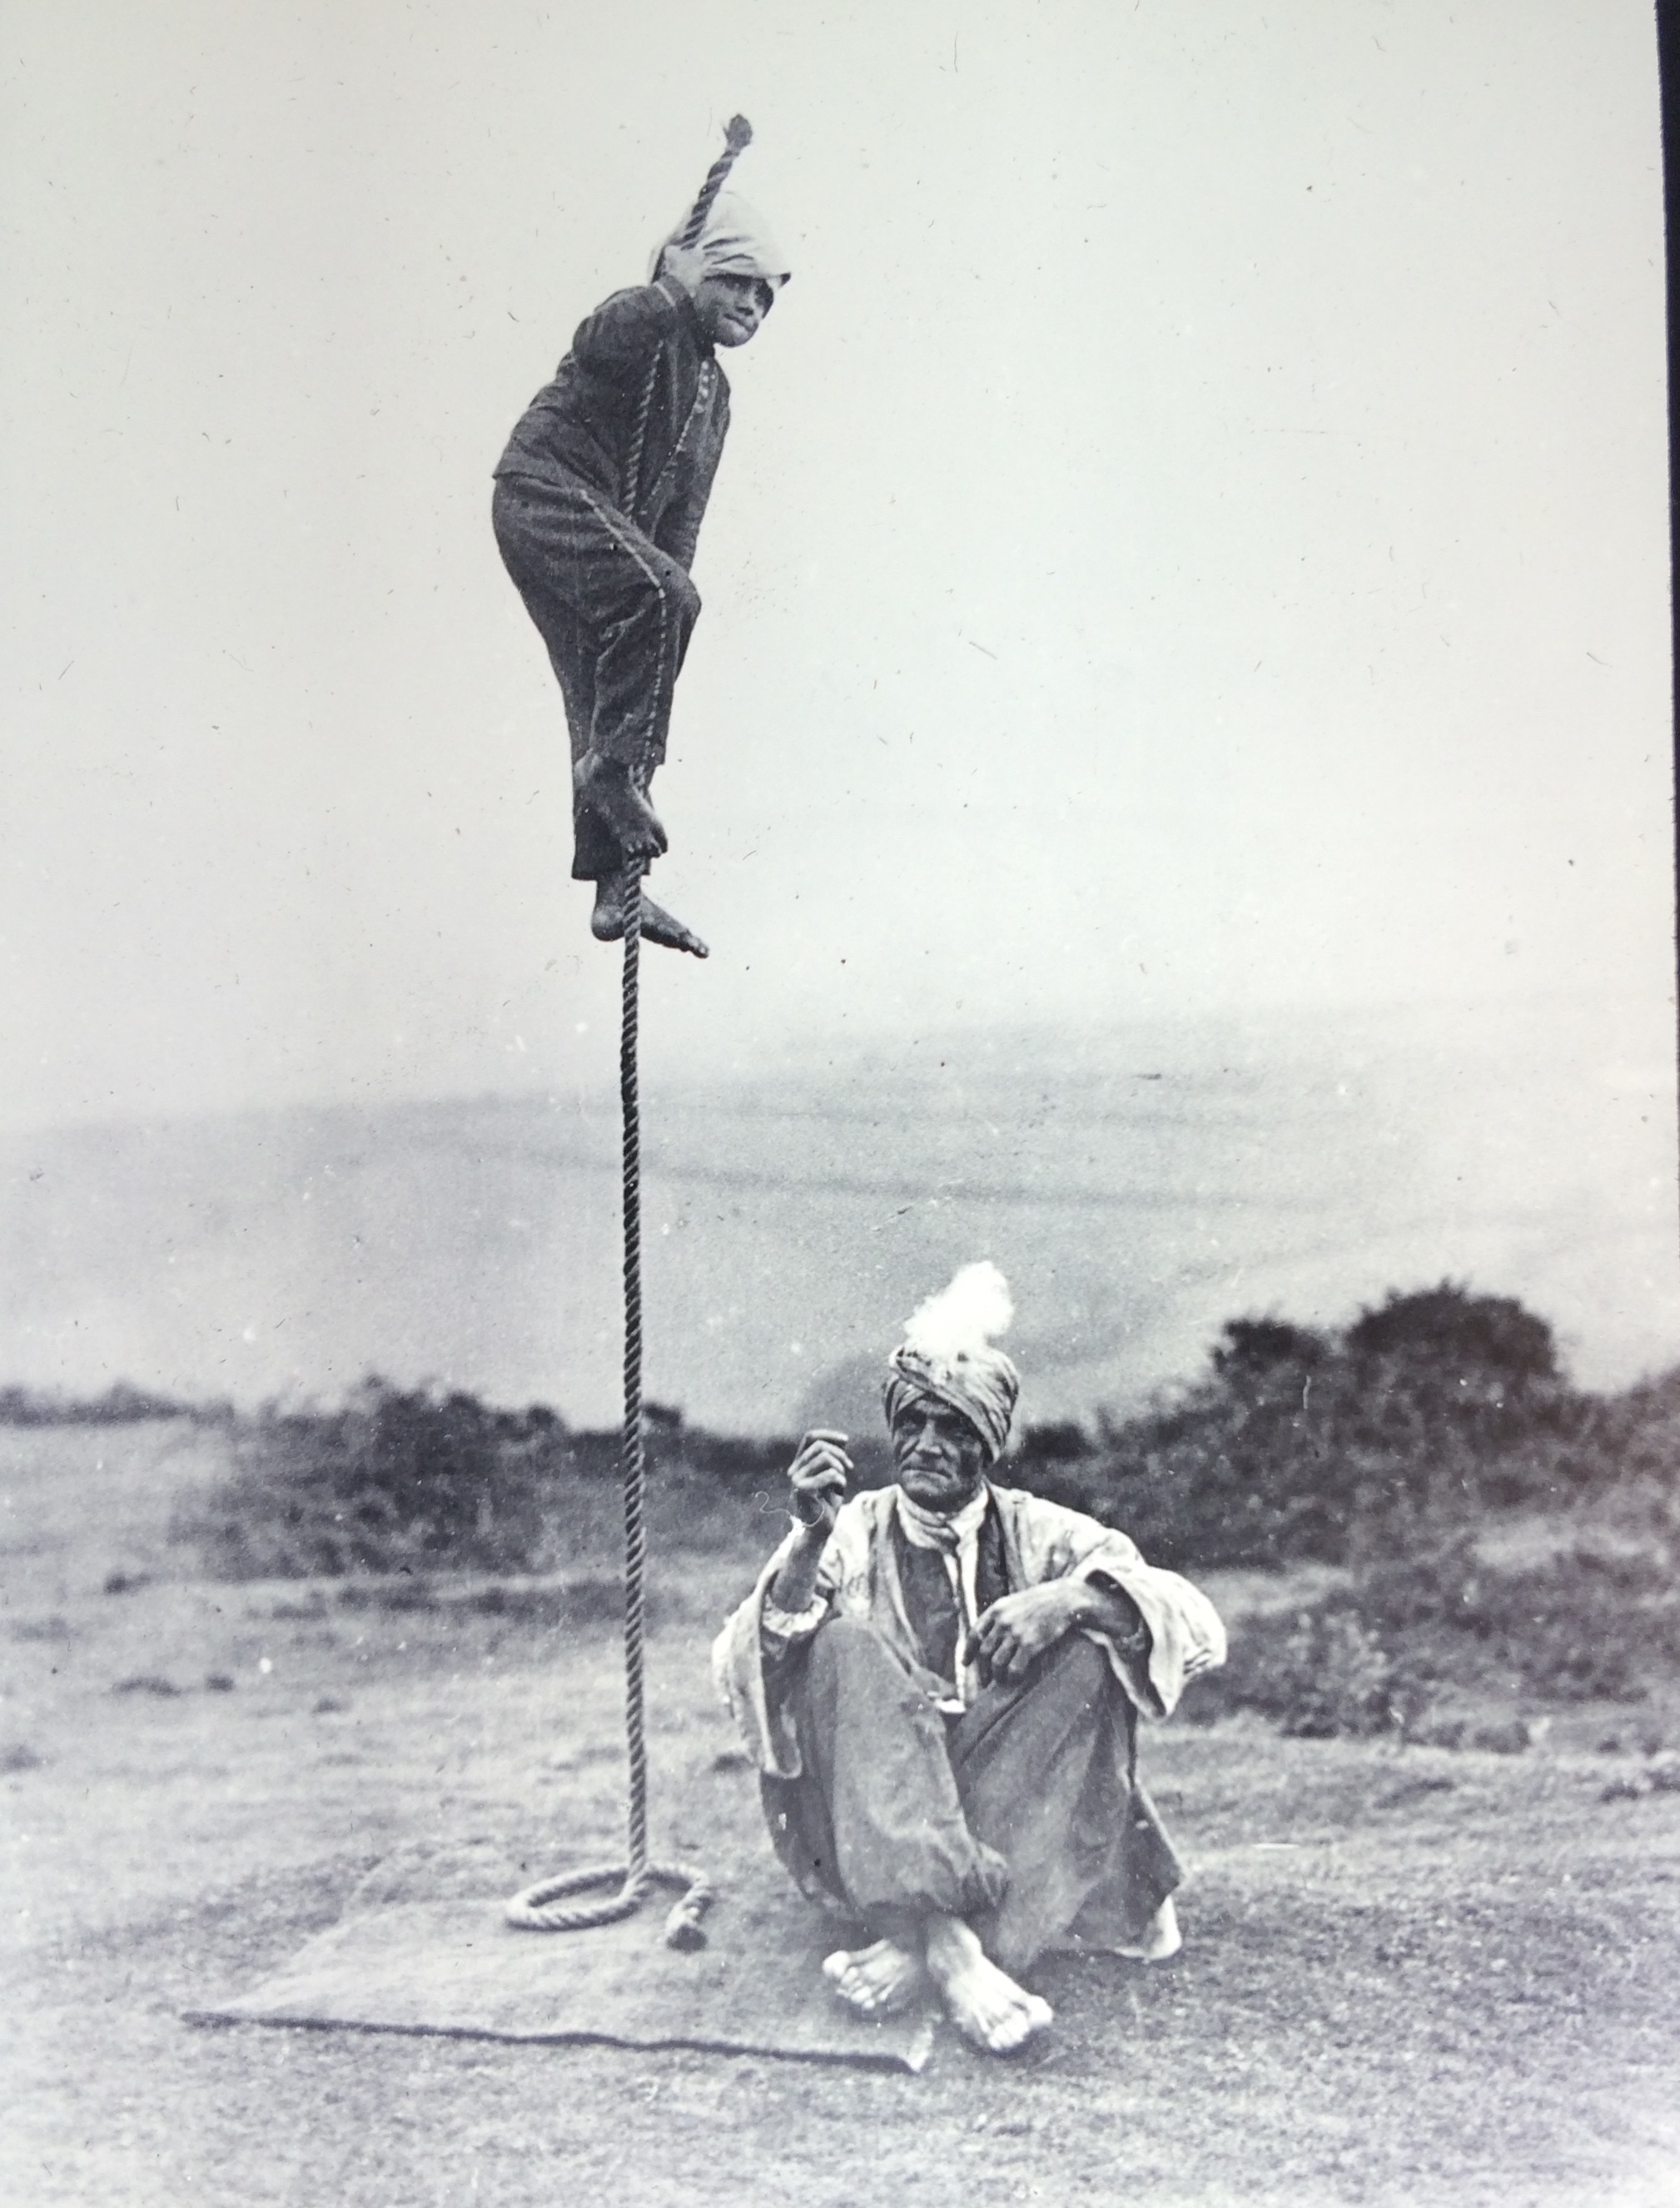 'Karachi'(Arthur Claude Derby) performs the Indian Rope Trick at West Hampstead in 1934: Harrry Price Collection, University of London. Courtesy Panmacmillan India